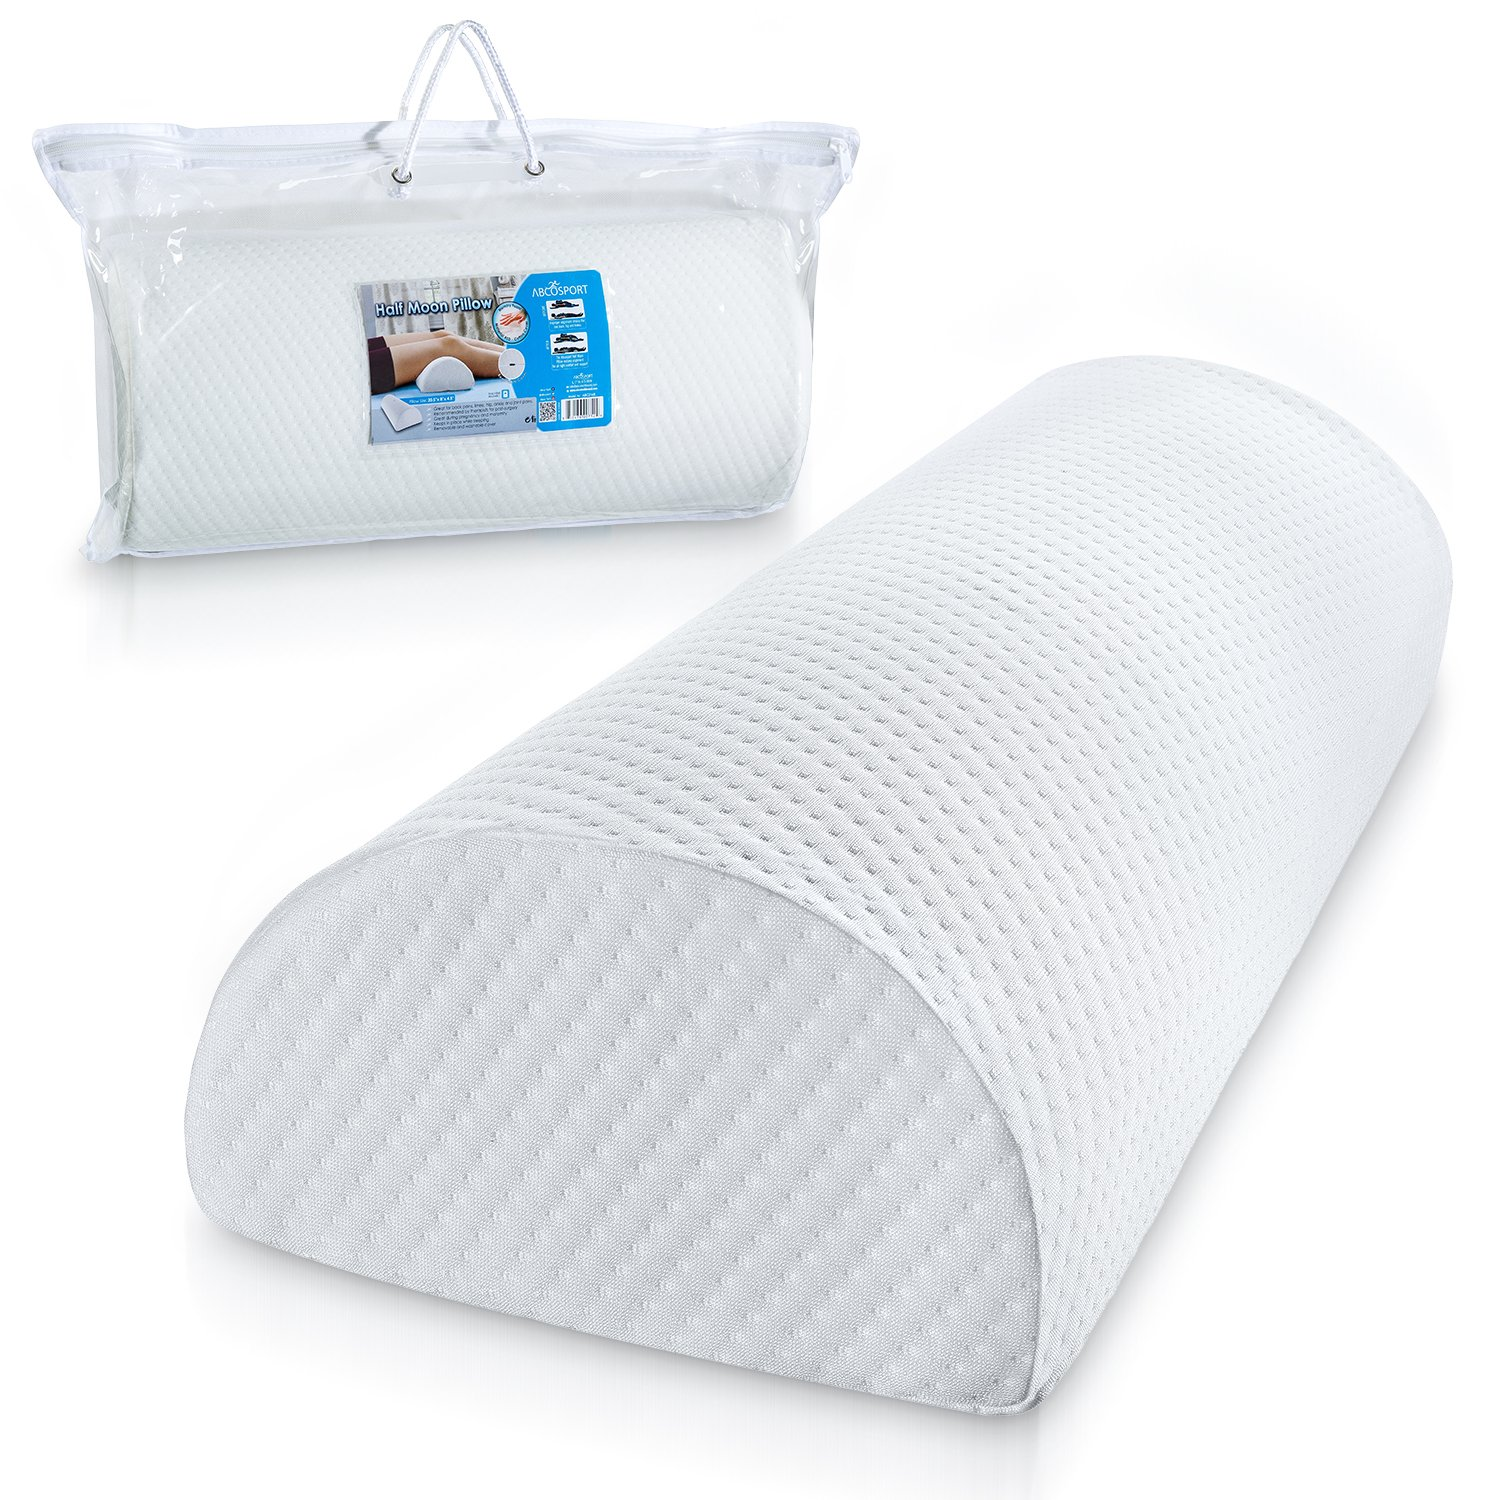 Abco Tech Half Moon Pillow Bolster - Pain Relief Memory Foam Cushion with Removable/Washable Cotton Cover – Reduced Stress on Spine, Effective Support for Side and Back Sleepers etc. (White) by Abco Tech (Image #9)